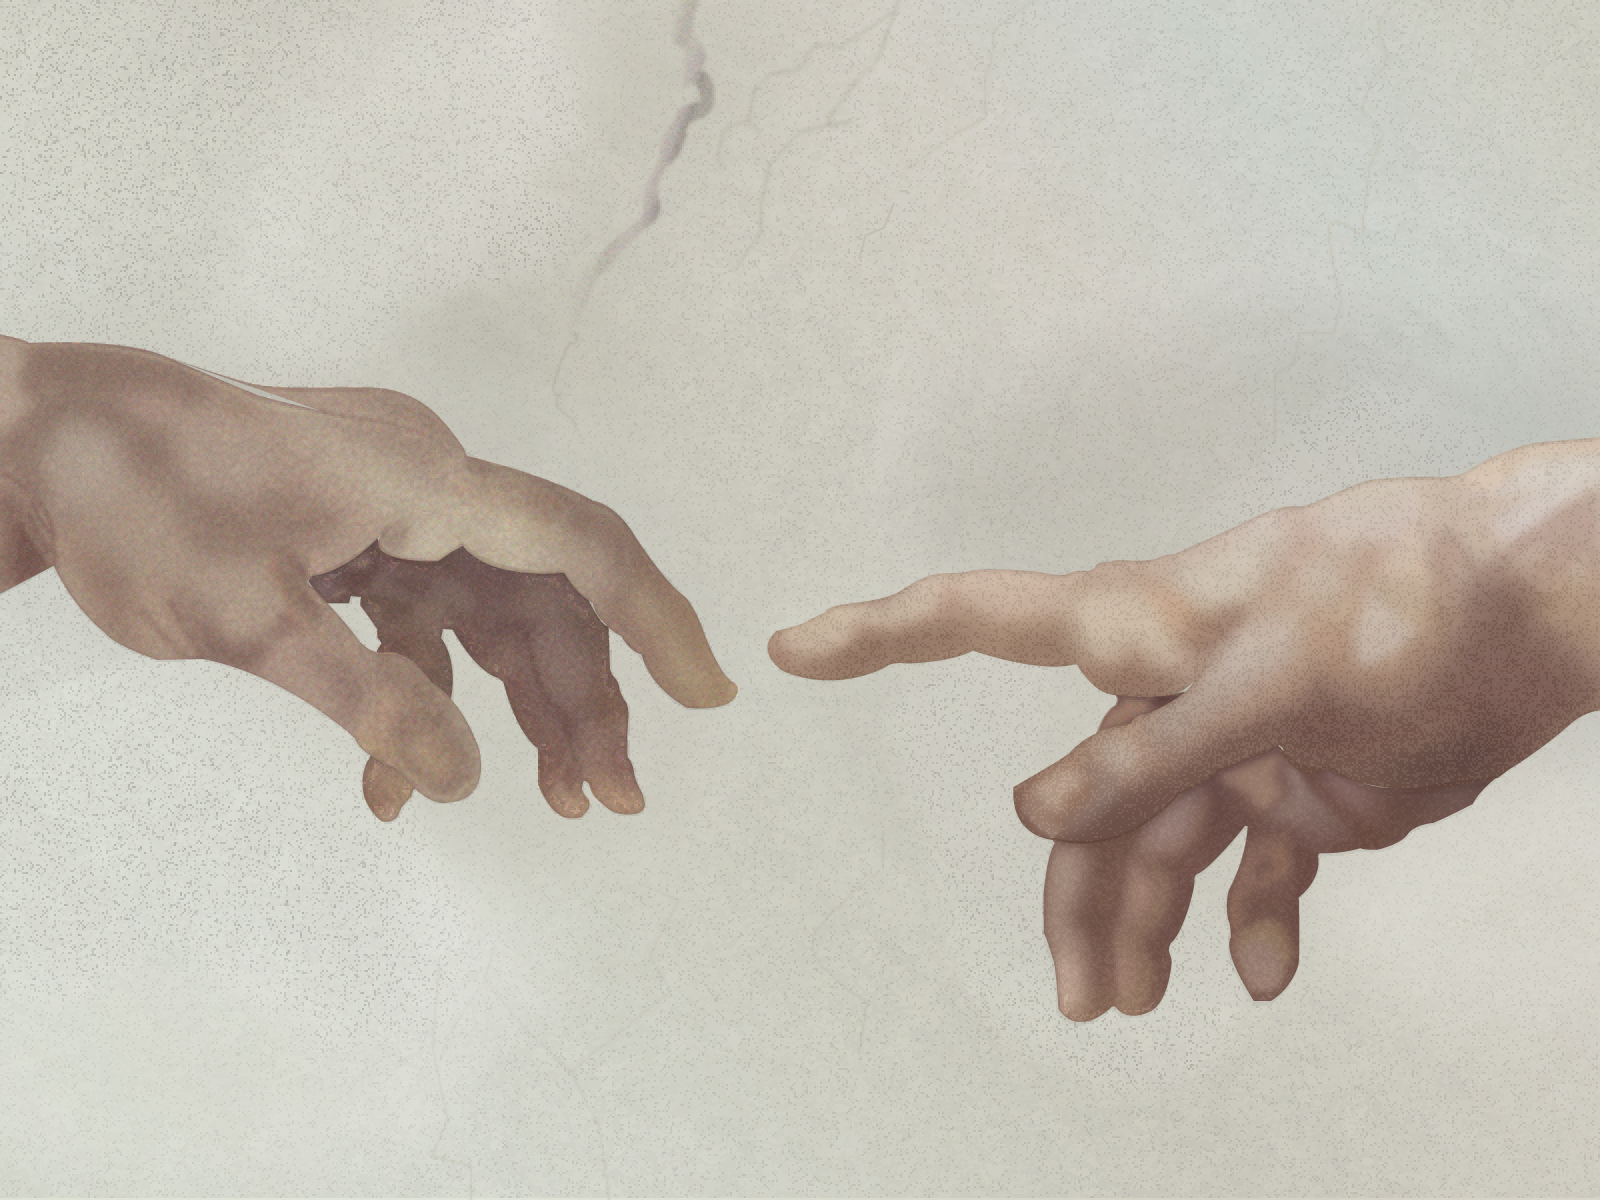 Dribbble Hand Of God Png By Ayelet Bro 2543790 Png Images Pngio The hand of god (神の一手, kami no itte ), also known as the divine move , refers to the perfect game of go. pngio com